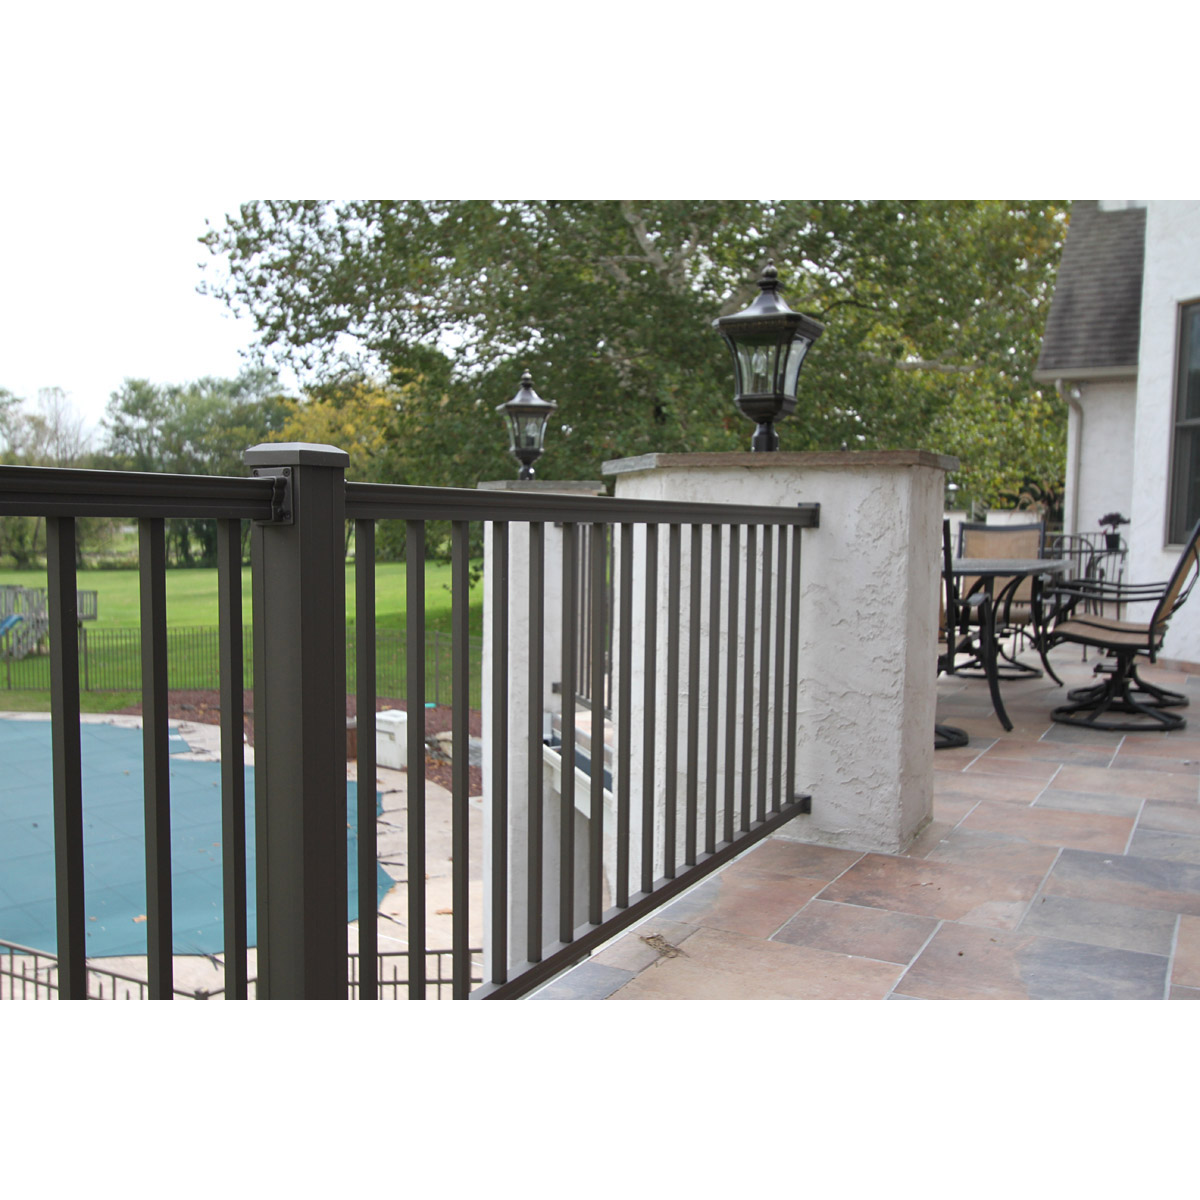 Key Link American Railing Sections Hoover Fence Co